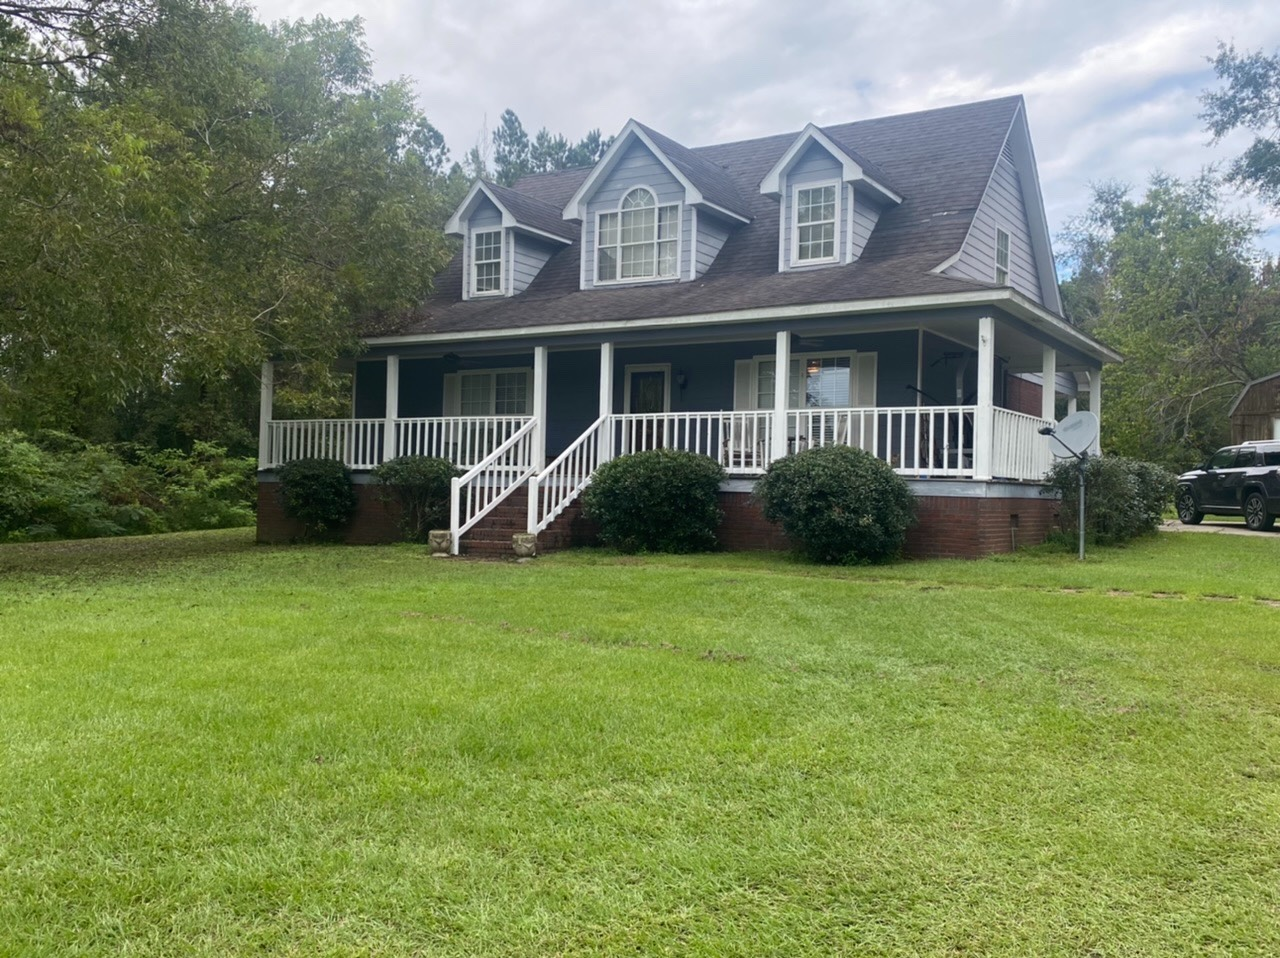 2-Story House In Thomasville